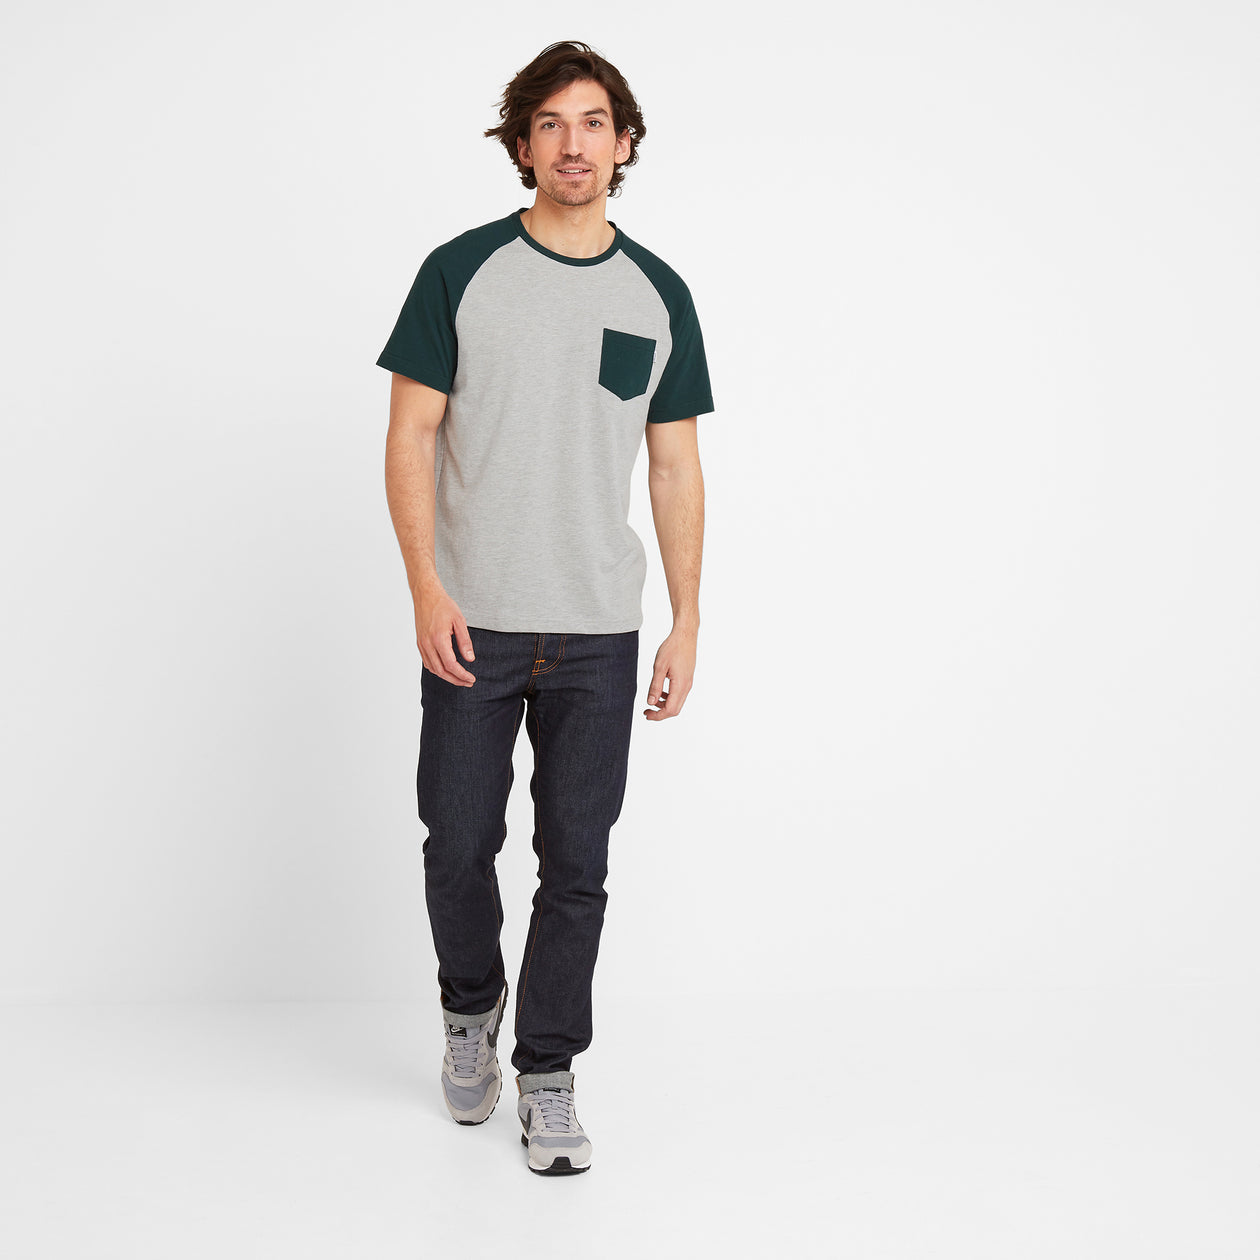 Norcliffe Mens Raglan T-Shirt - Forest/Light Grey Marl image 4